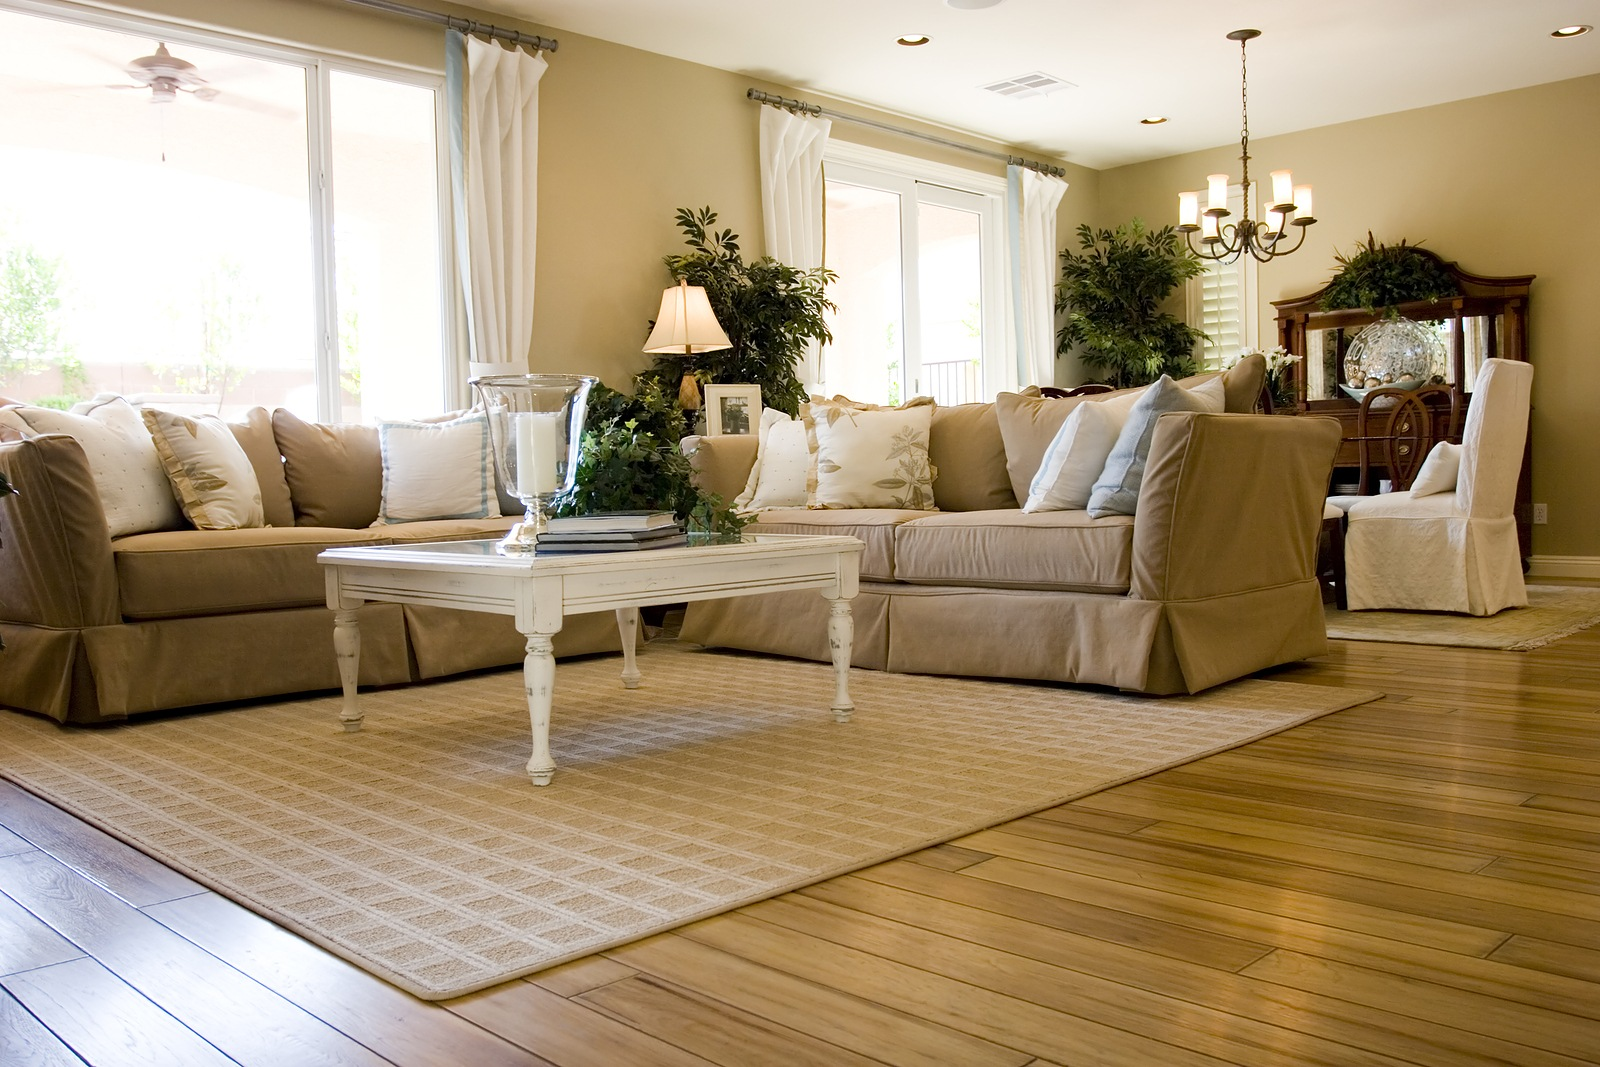 3 Reasons To Clean Your Carpets and Floors After The Holidays